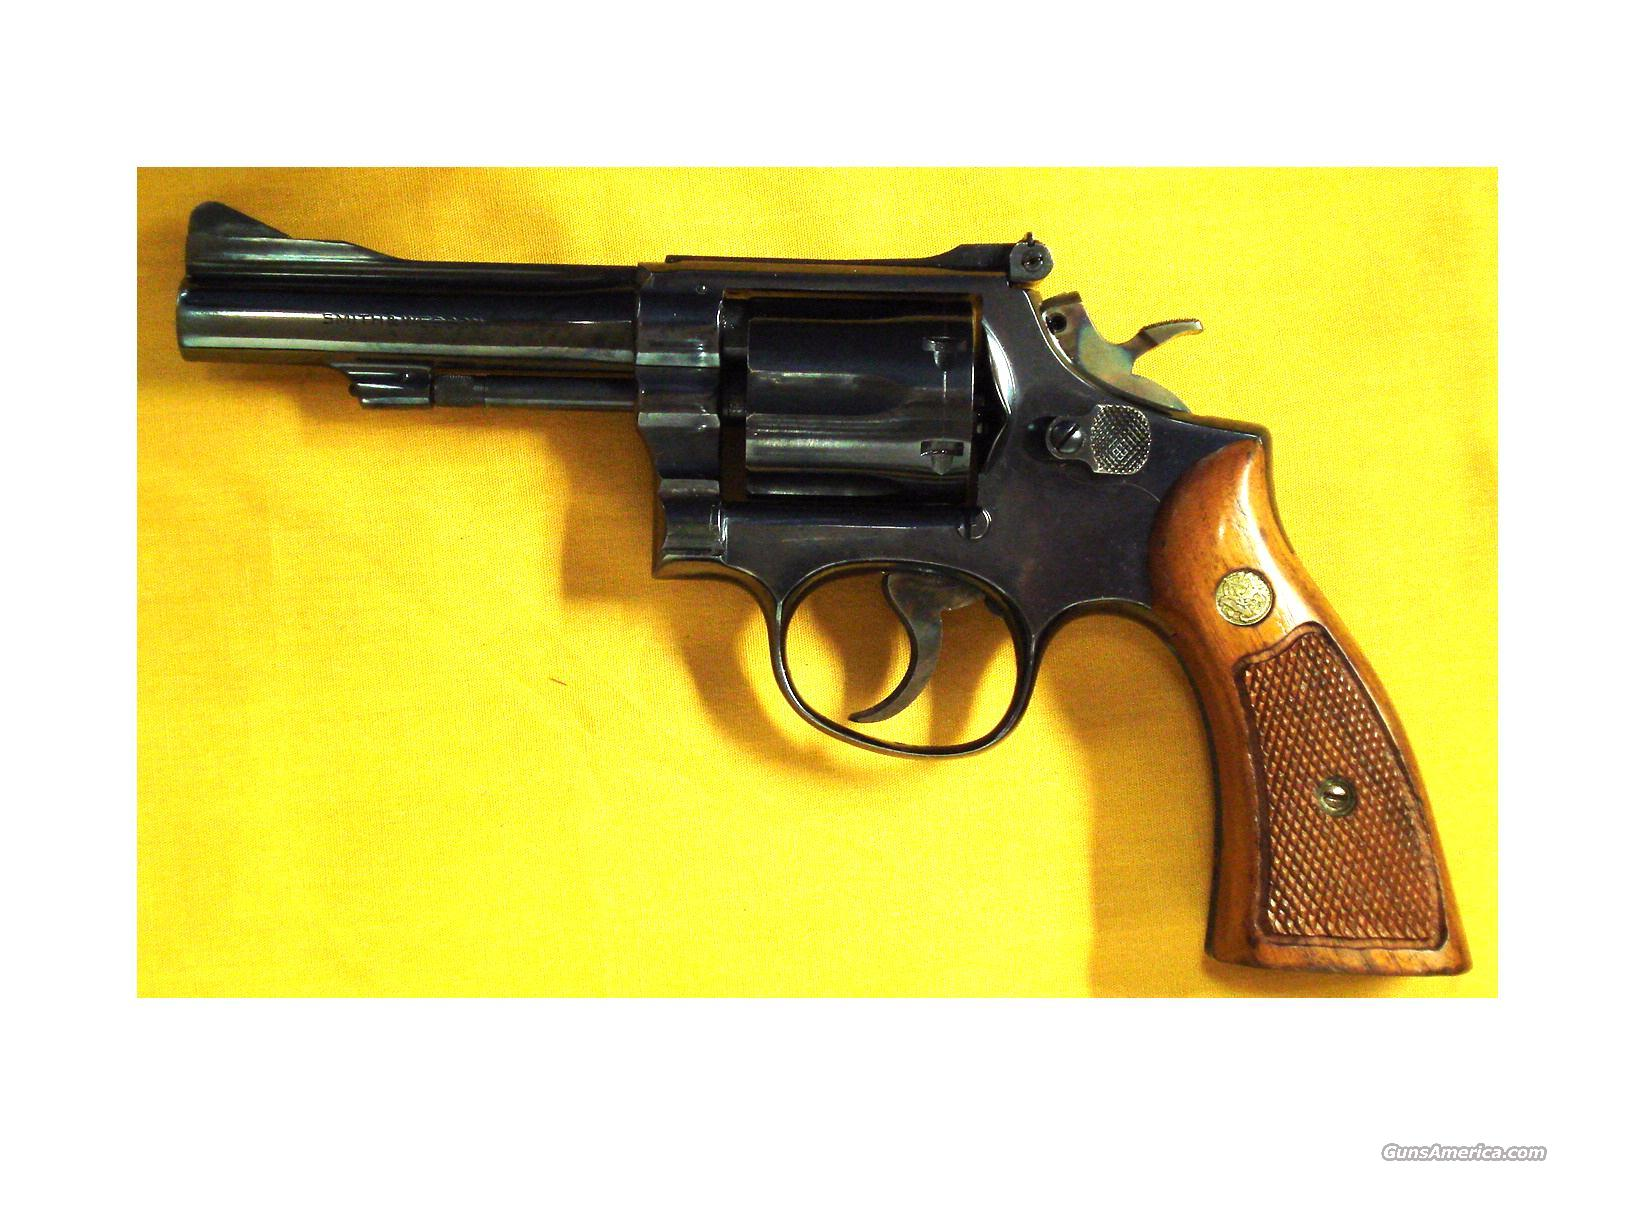 "S&W 15-3 .38SPEC. 4"" BARREL  Guns > Pistols > Smith & Wesson Revolvers > Full Frame Revolver"